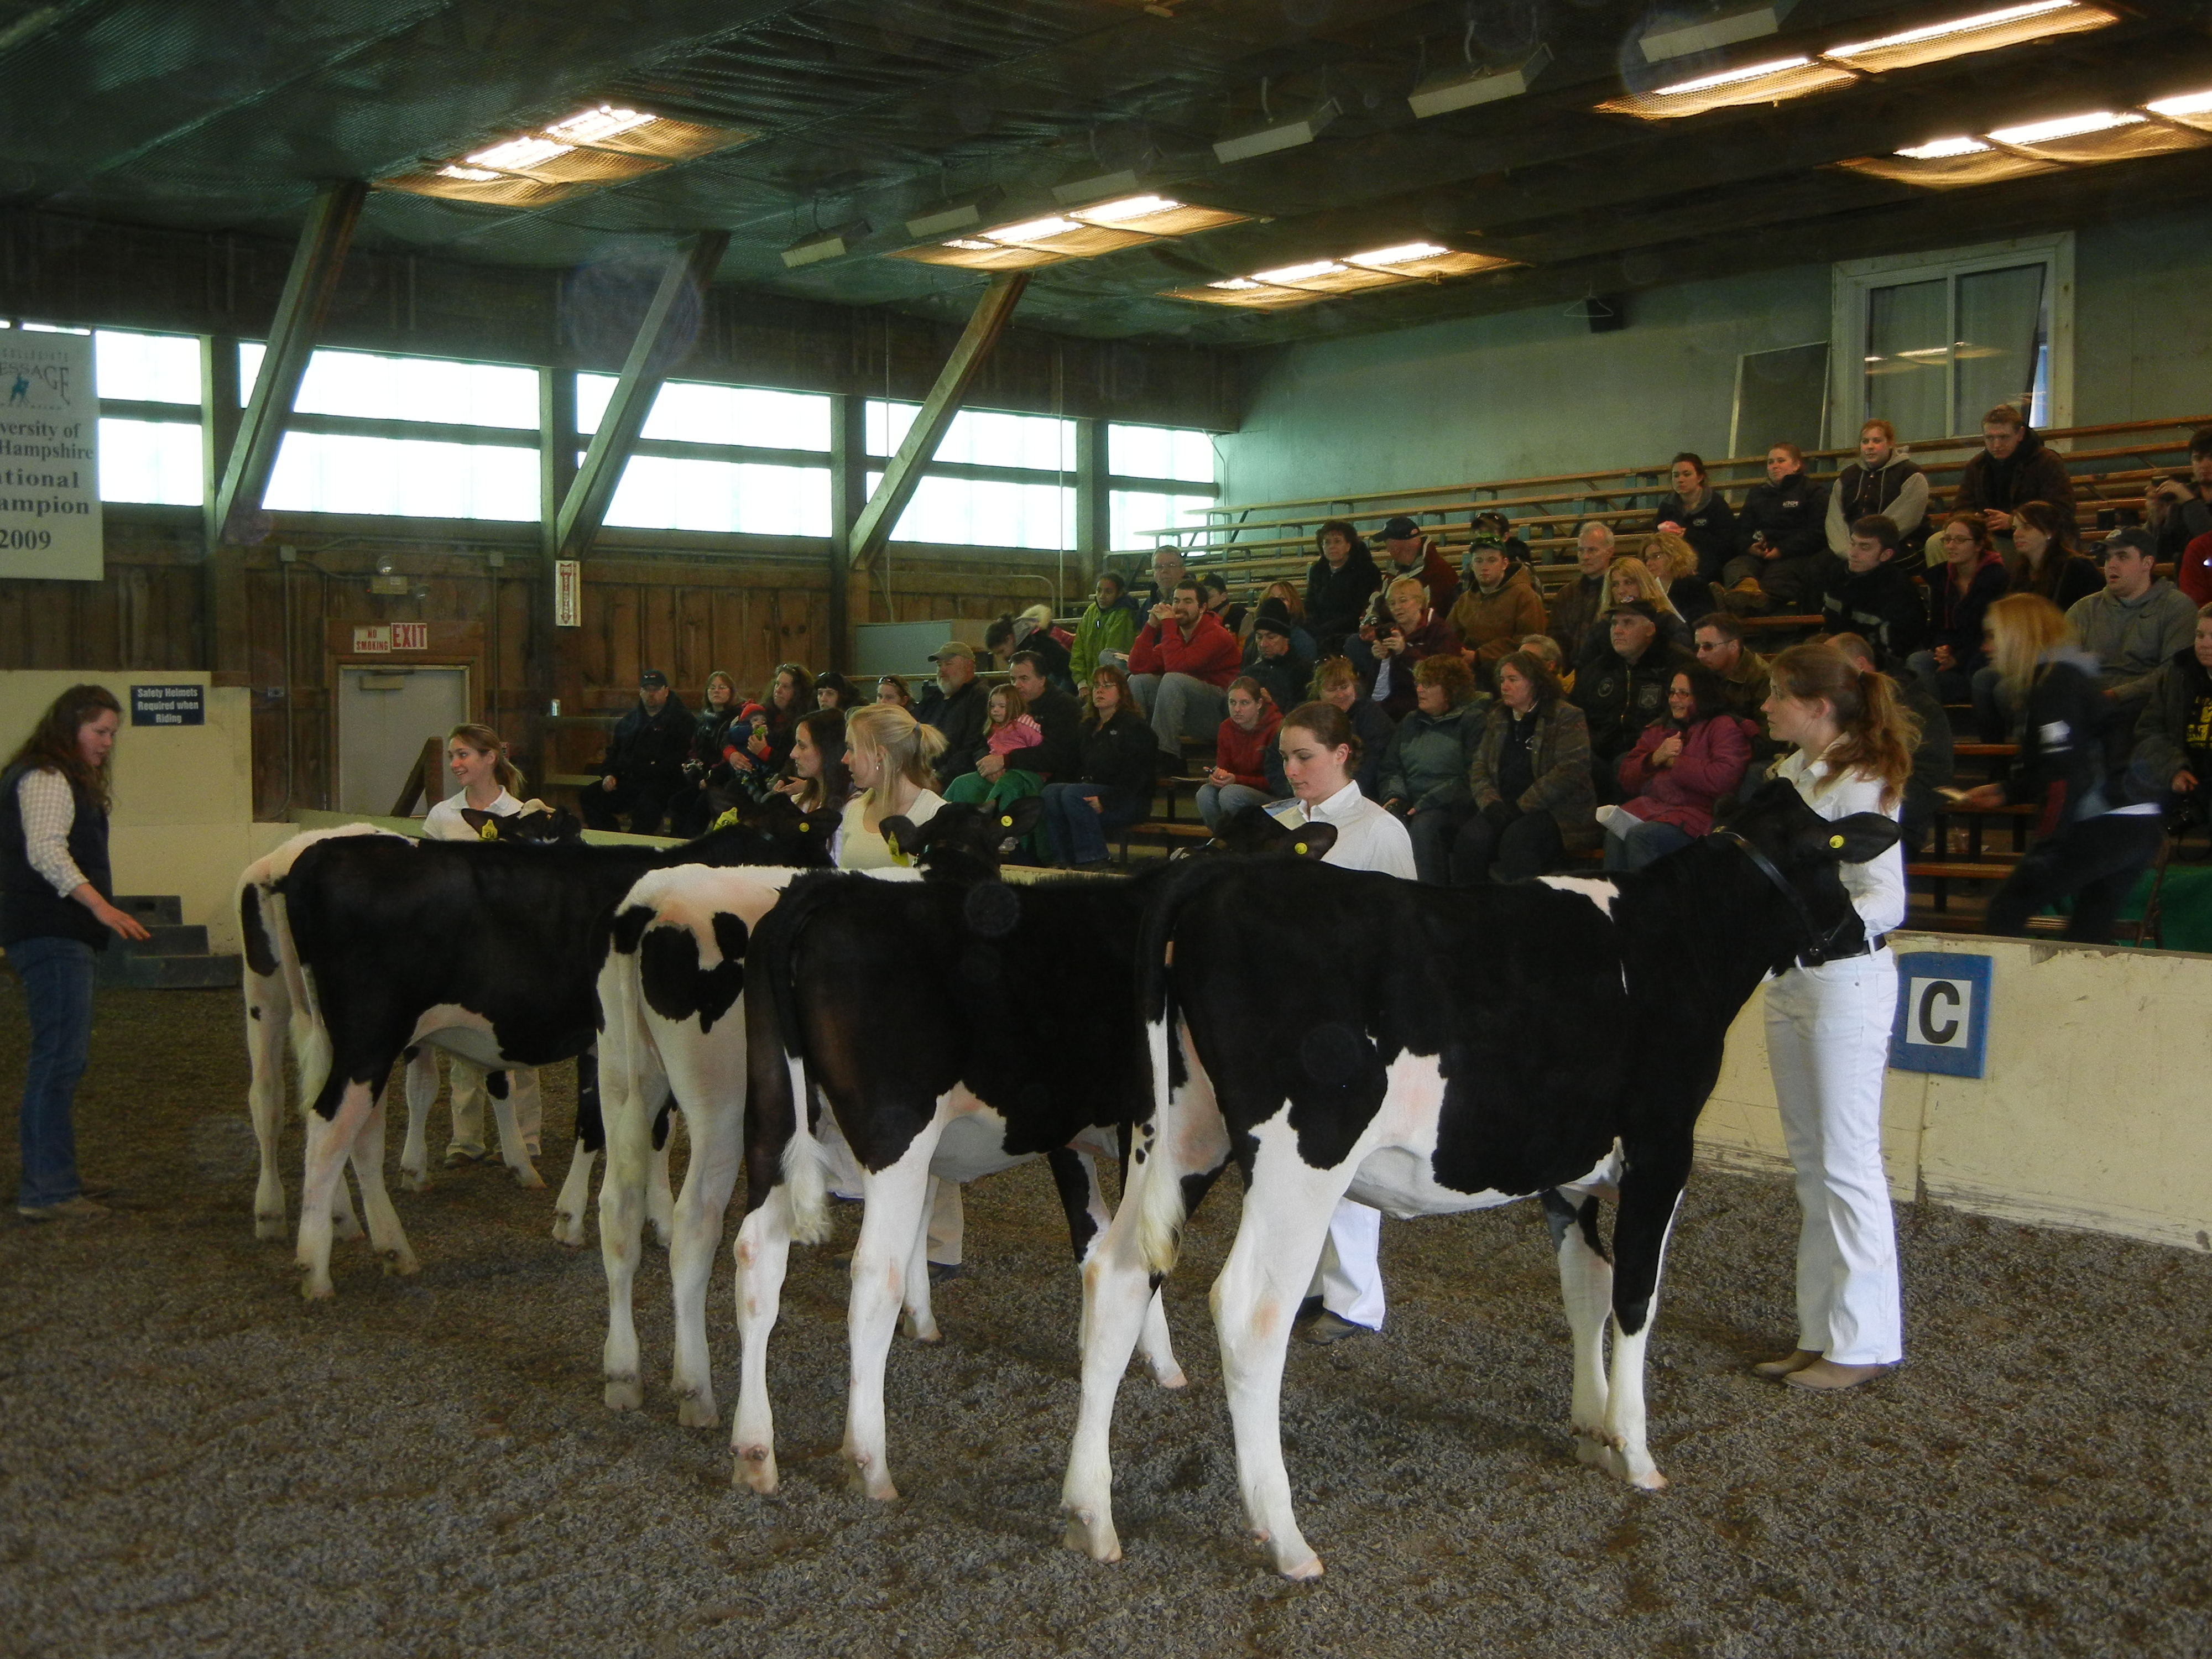 Dairy heifers being shown at the UNH Little Royal